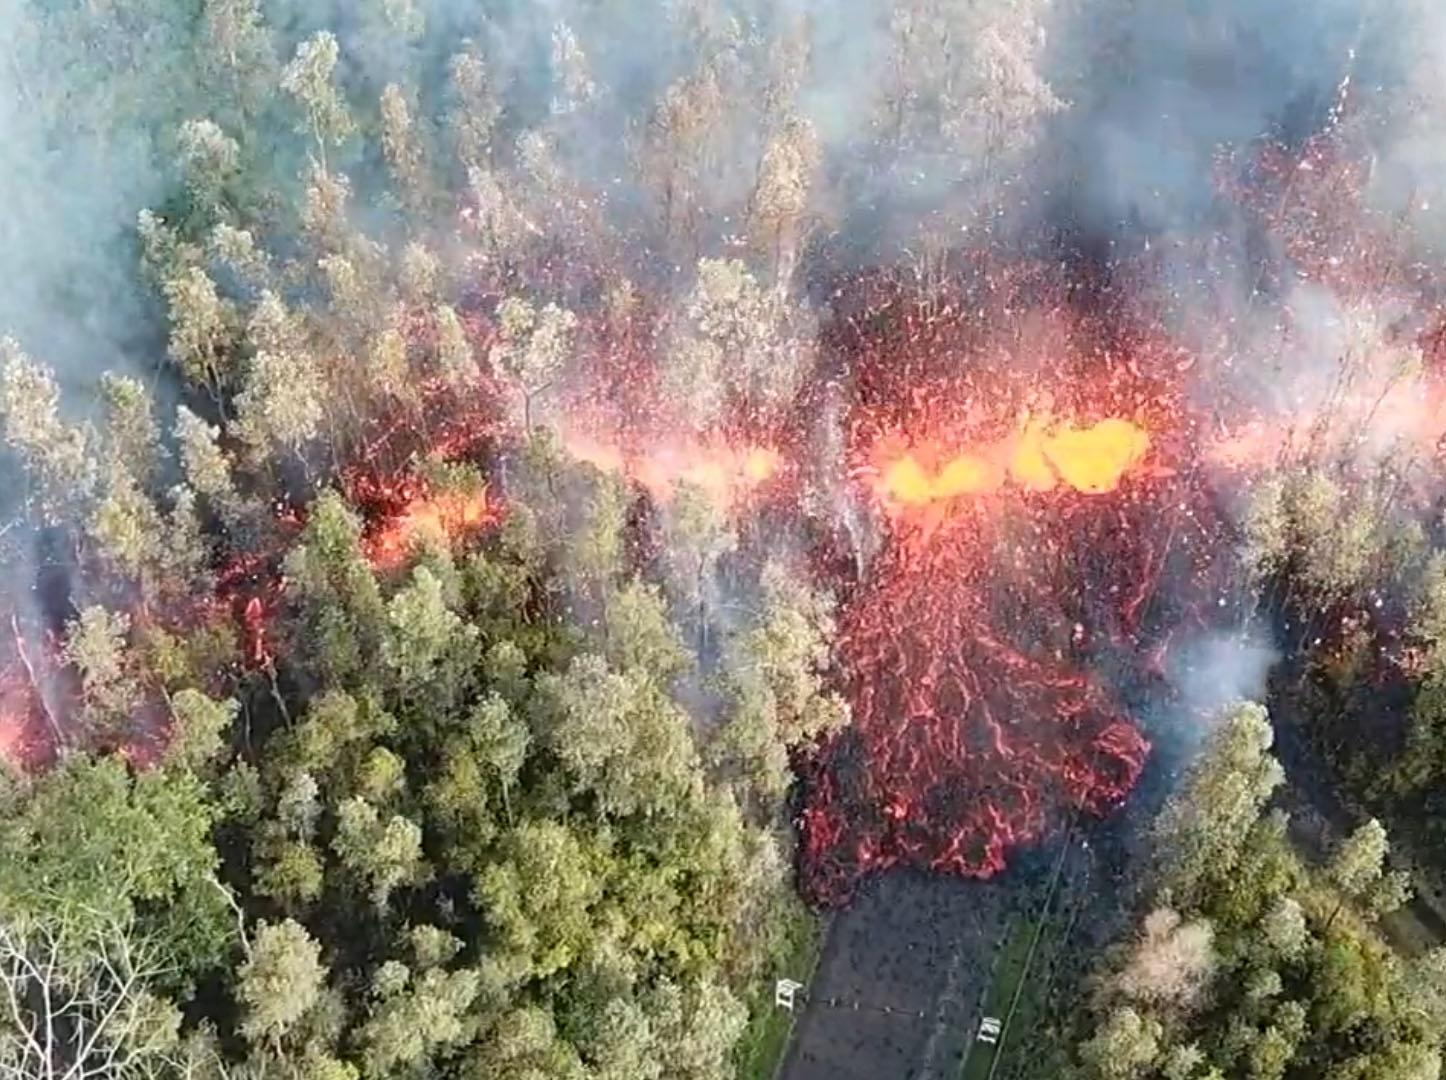 Hawaii volcano latest: Drone footage shows lava spewing out of ground near residential area after Mount Kilauea erupts